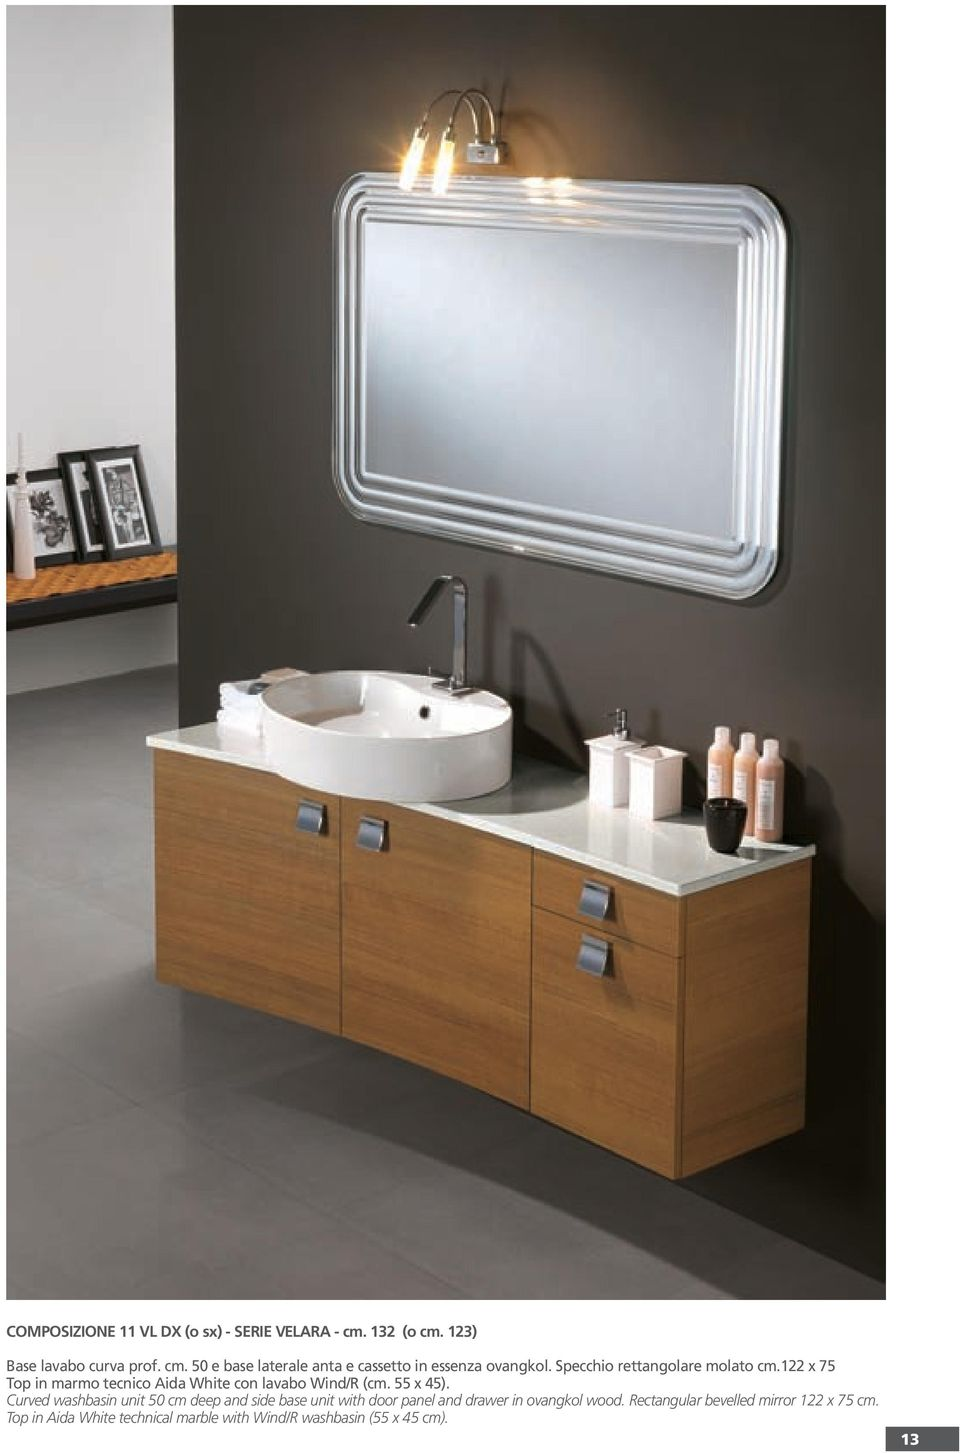 Curved washbasin unit 50 cm deep and side base unit with door panel and drawer in ovangkol wood.